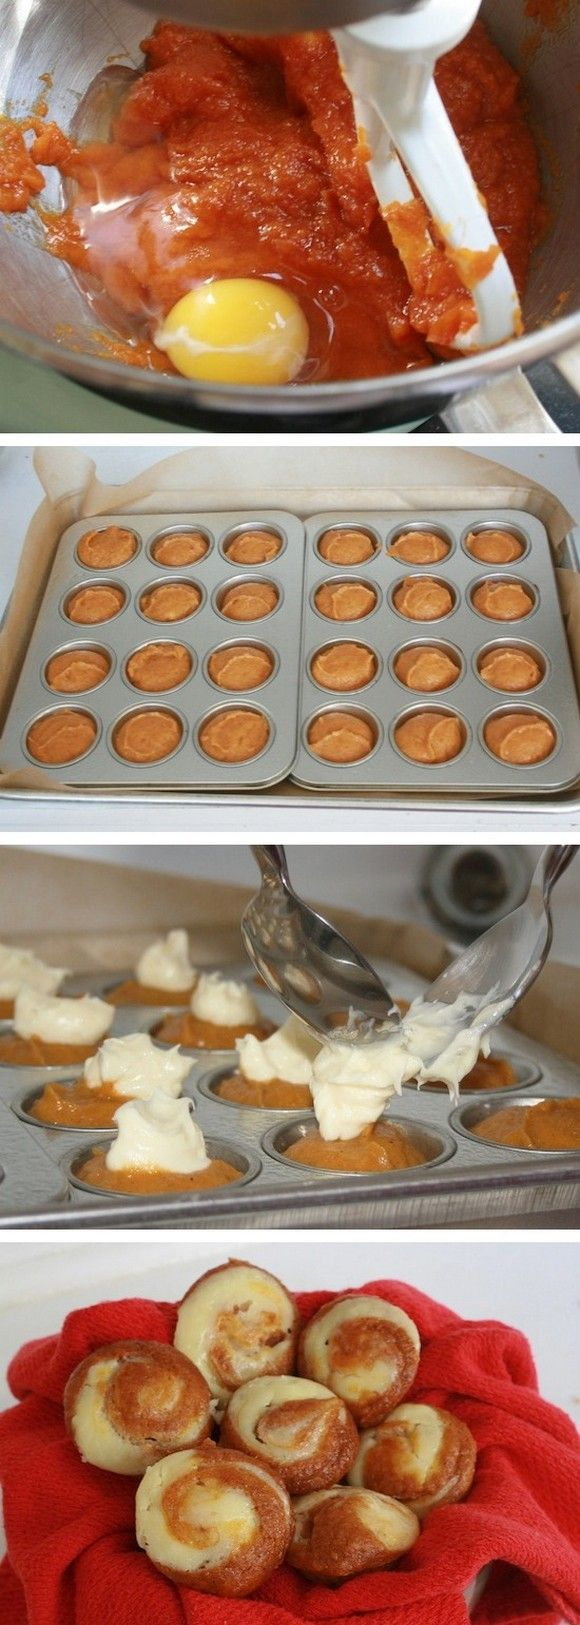 Best #Pumpkin Recipes on the Net (August 2013 Edition): Easy Pumpkin Cheesecake Muffins recipe by Recipe By Photo